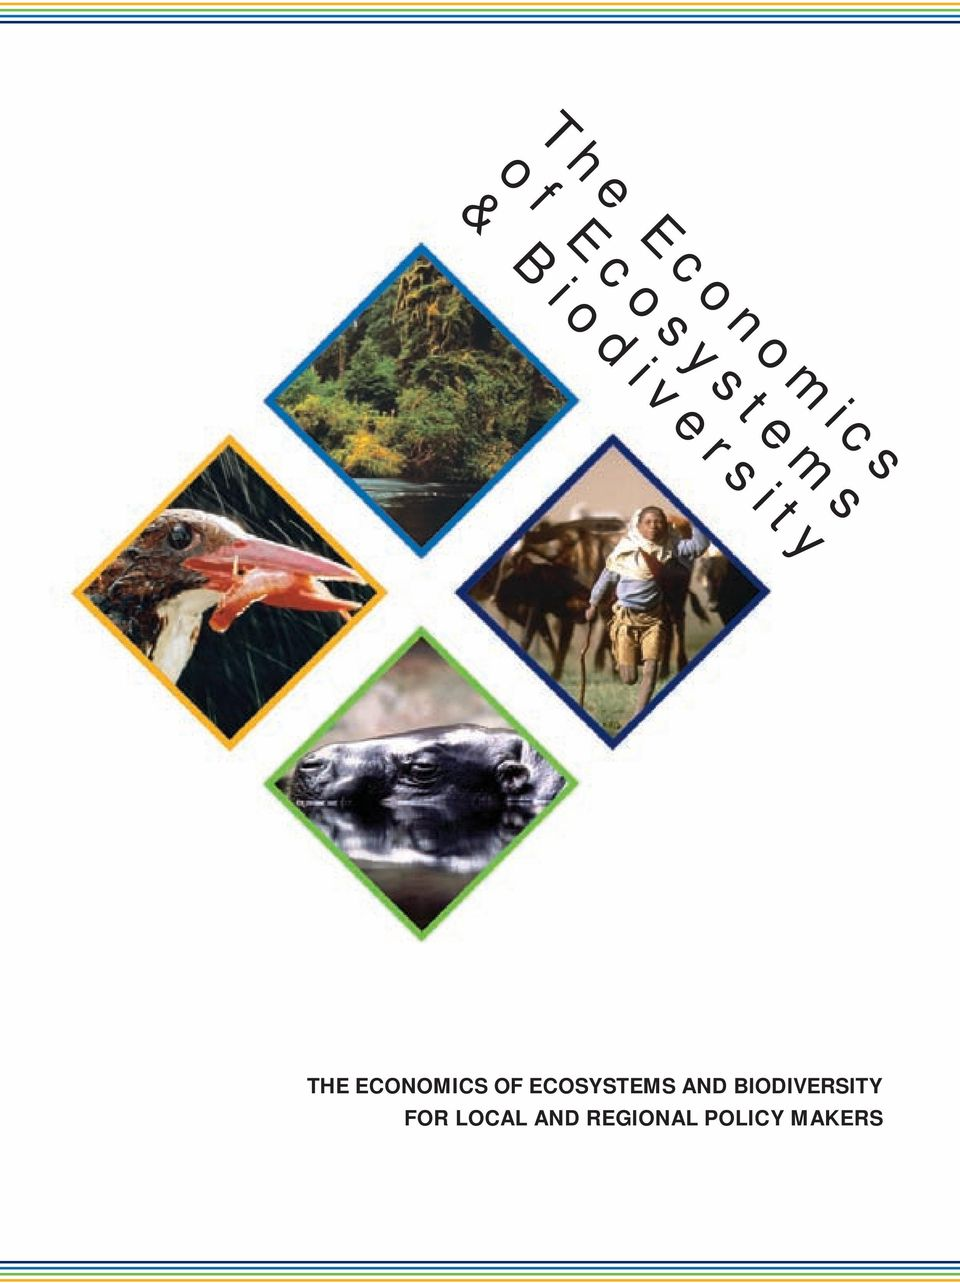 THE ECONOMICS OF ECOSYSTEMS AND